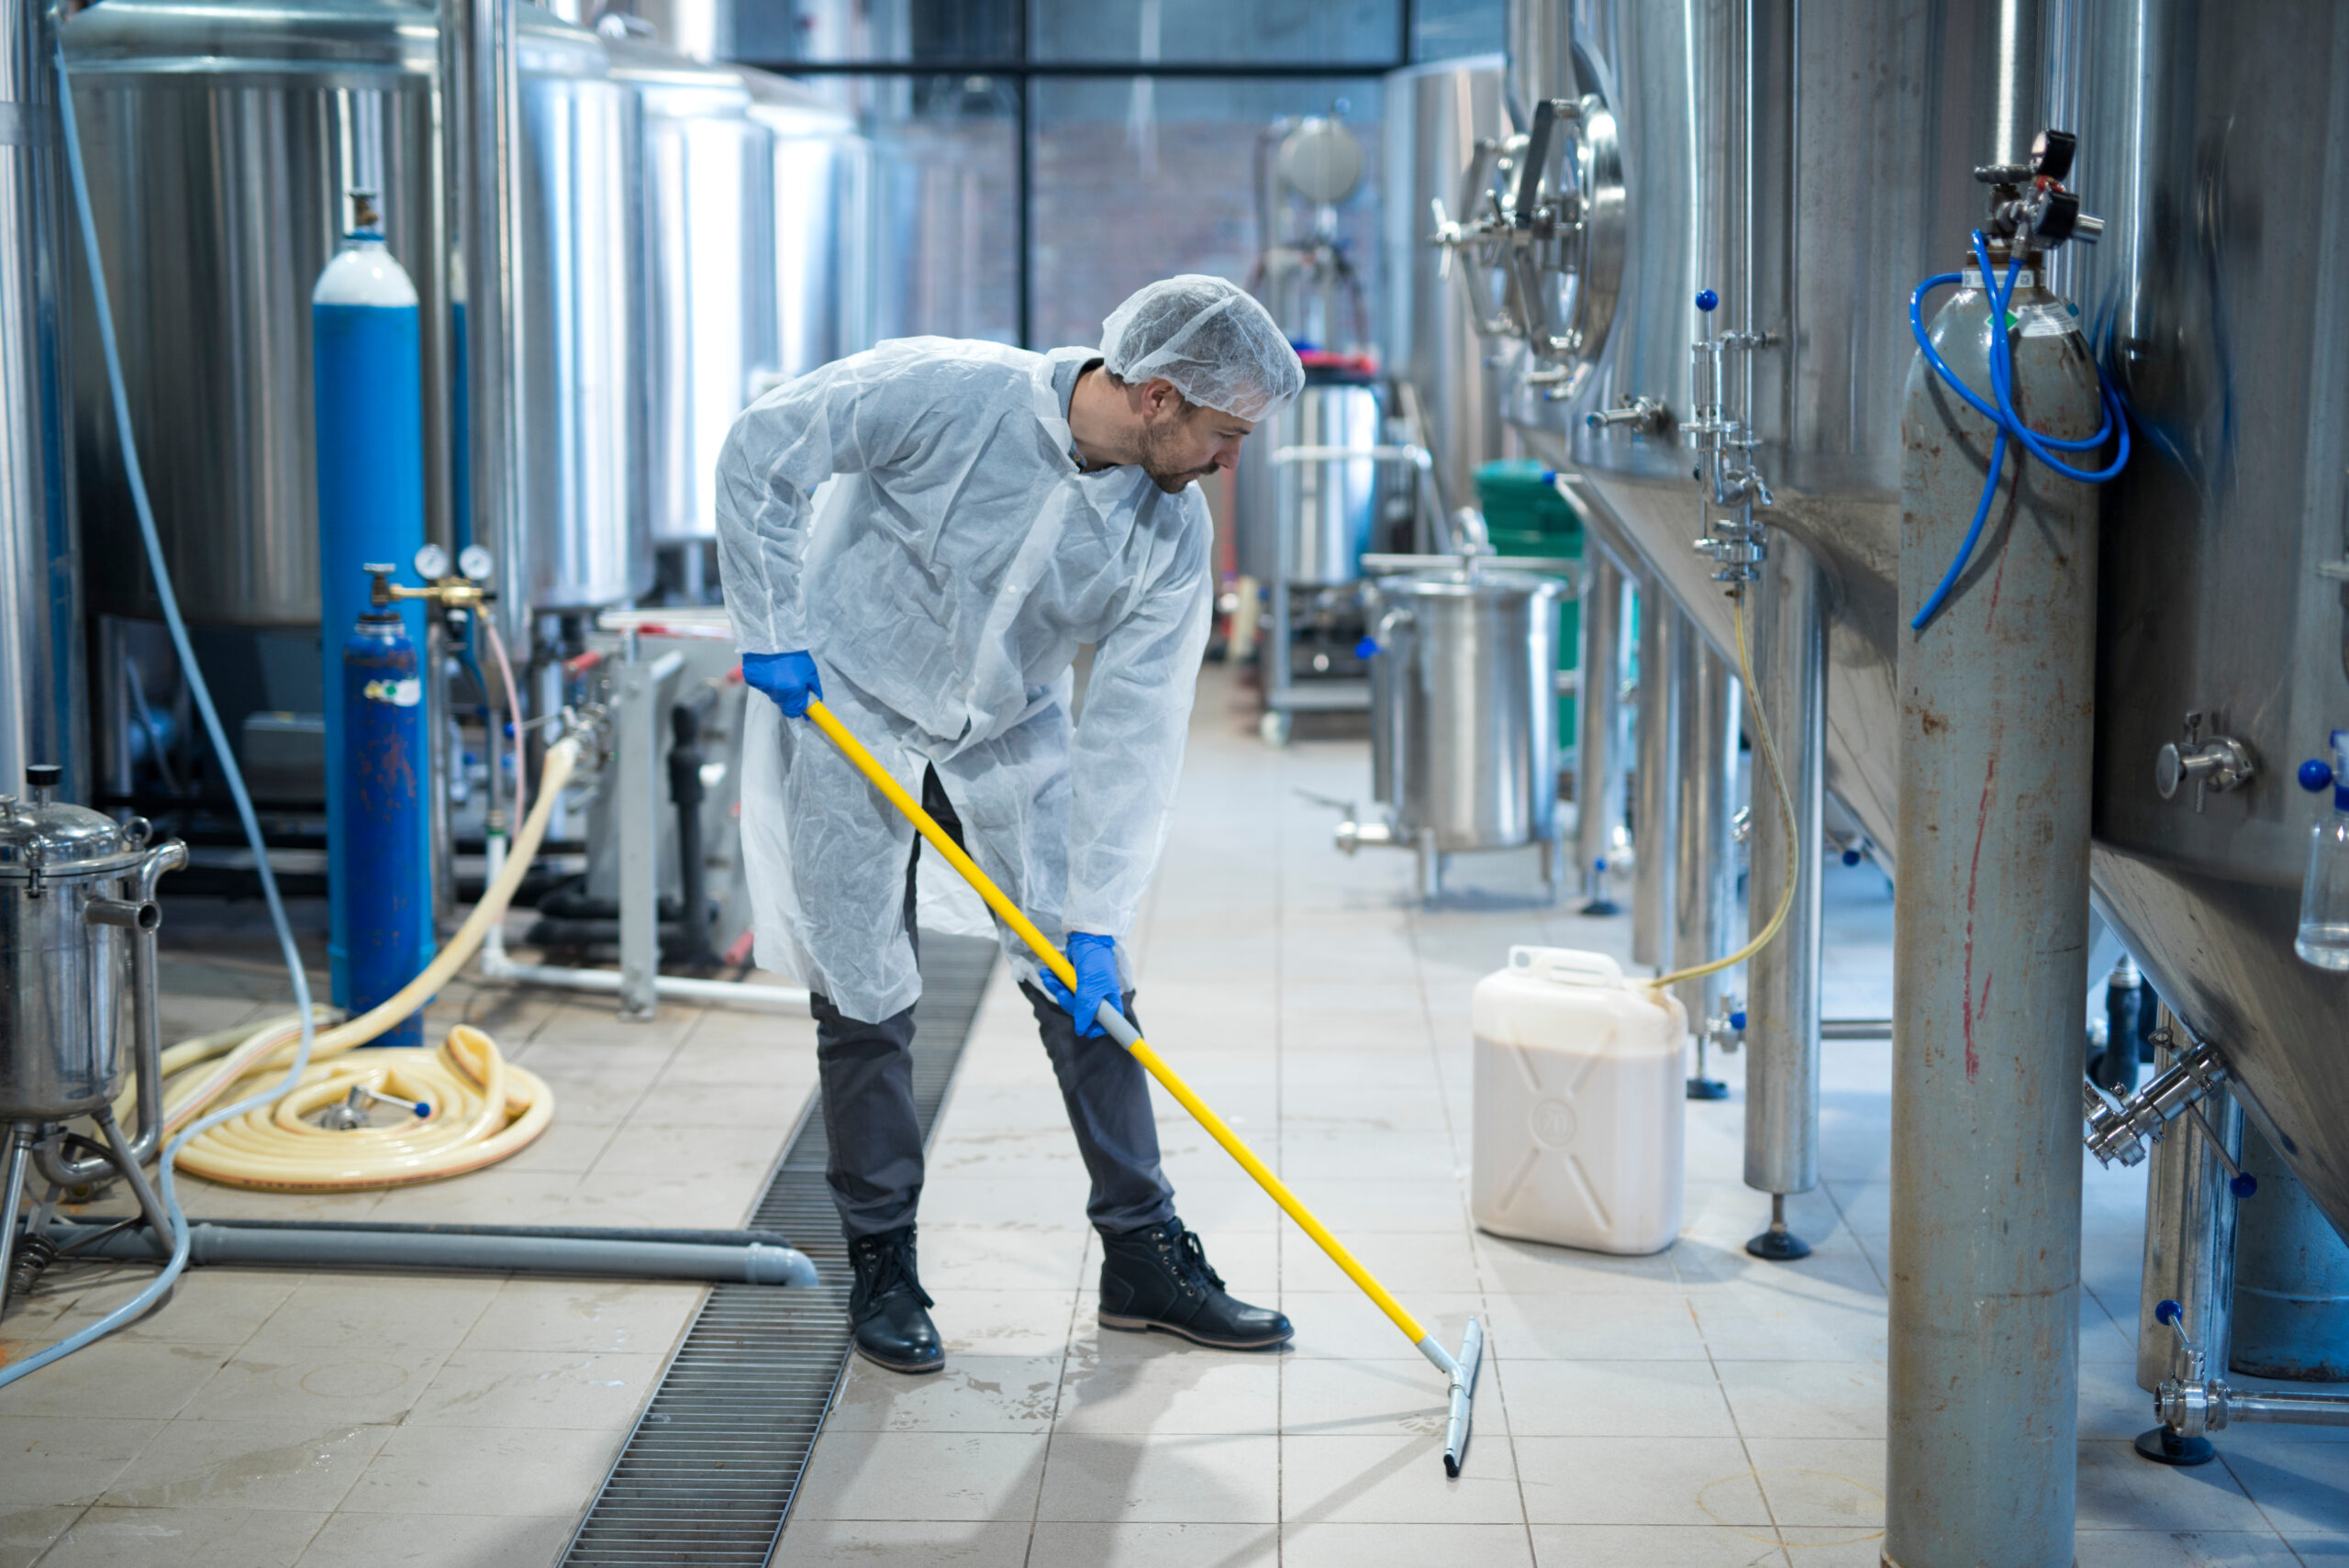 Commercial clean up: map mopping floor with industrial strength cleaners